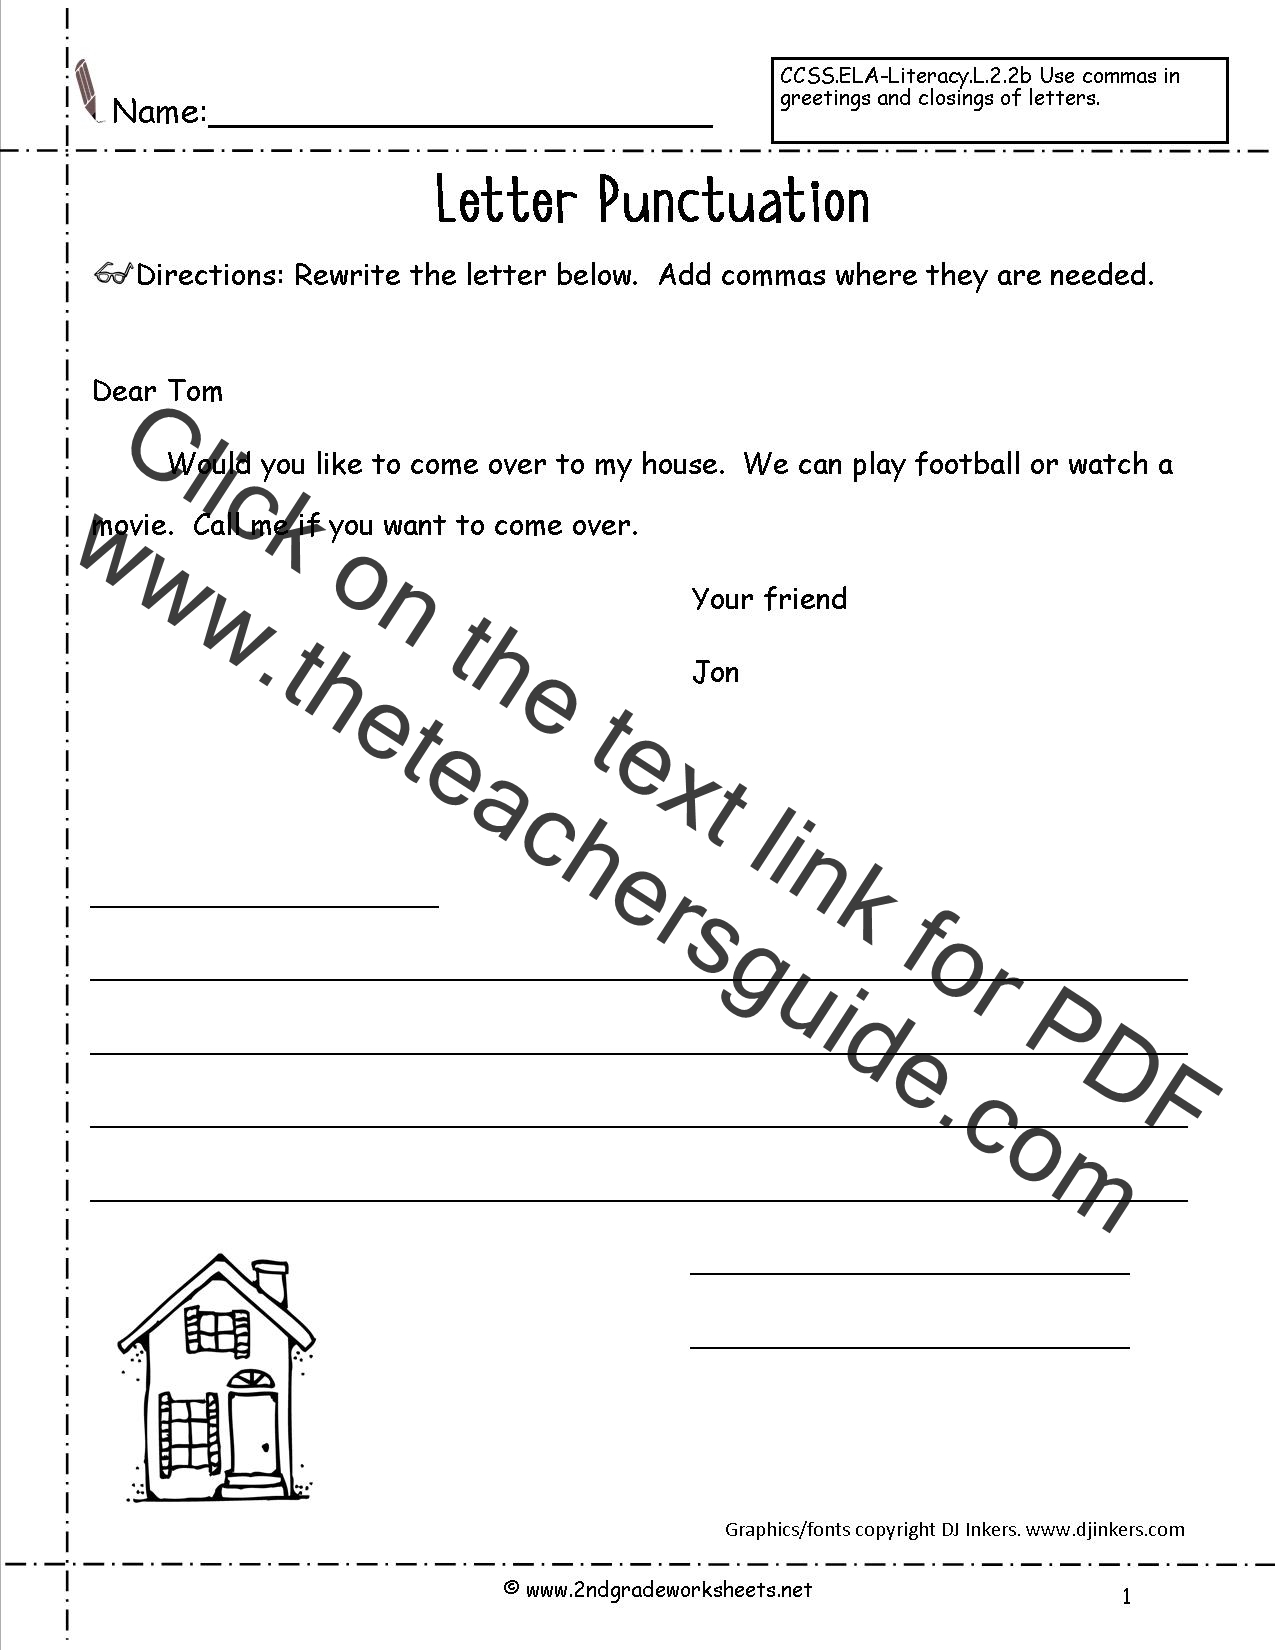 Worksheets Parts Of A Letter Worksheet letters and parts of a letter worksheet friendly punctuation